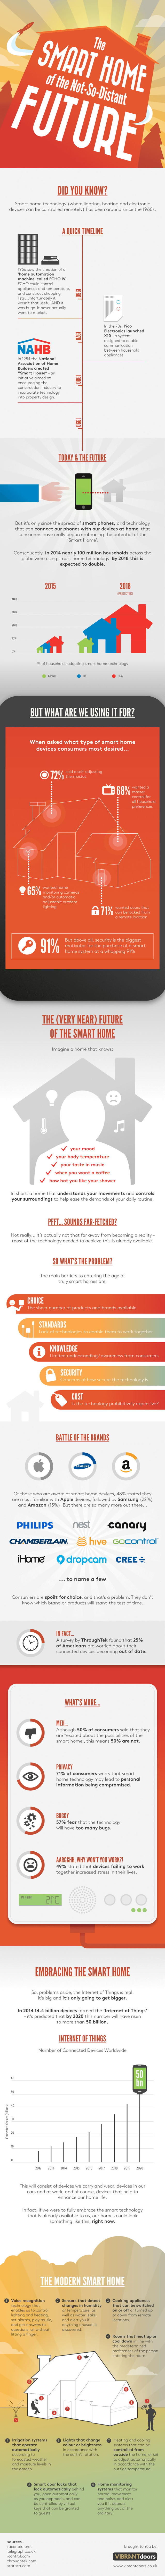 the-smart-home-of-tomorrow-infographic